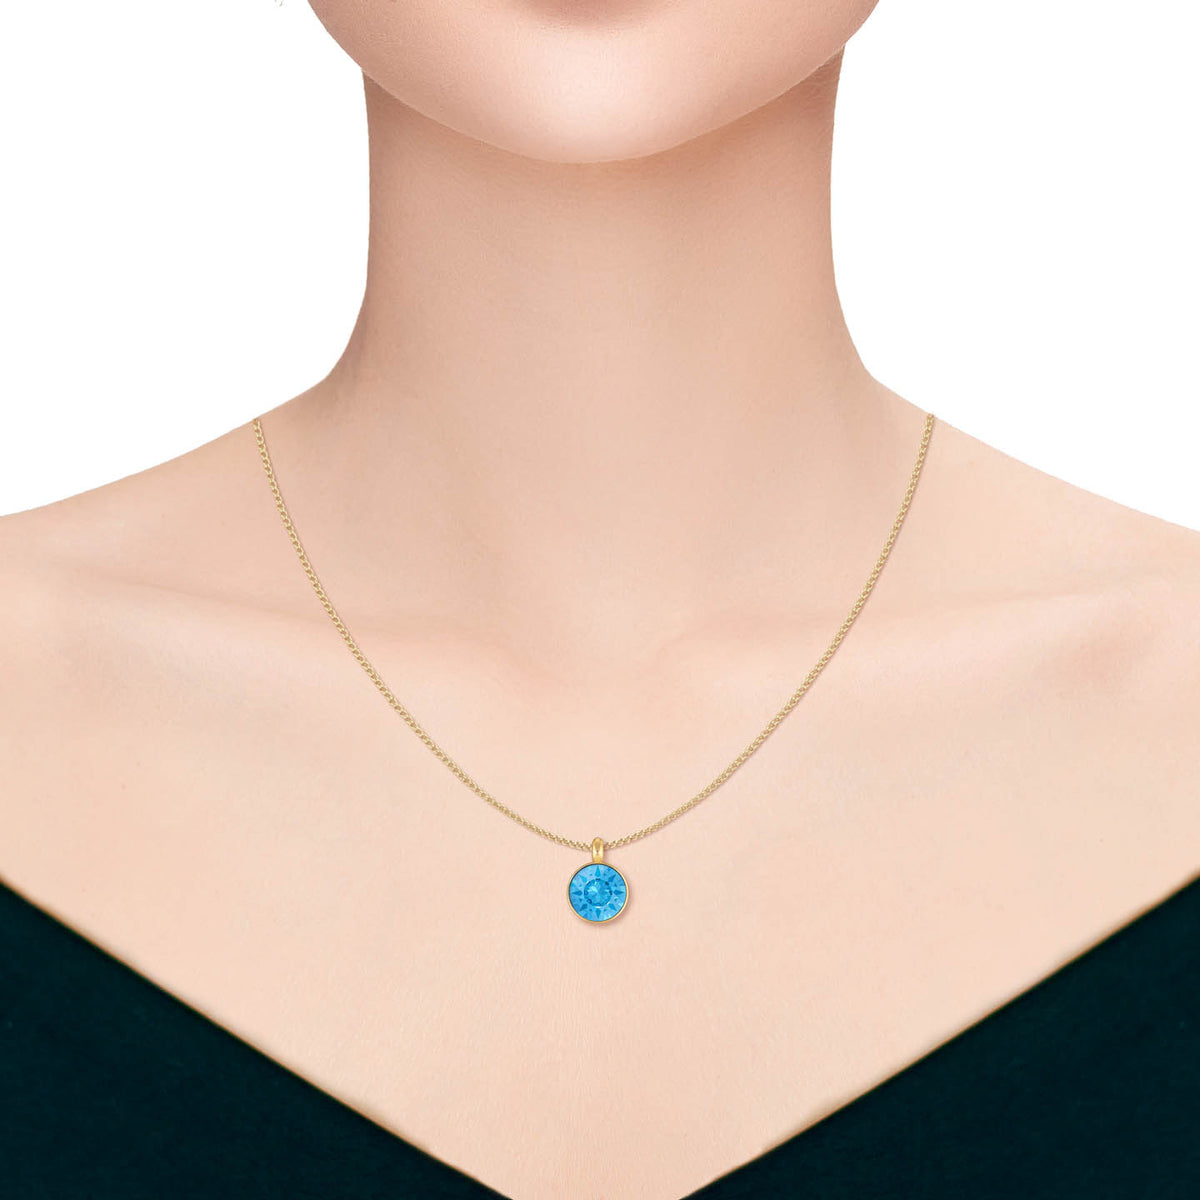 Bella Pendant Necklace with Blue Aquamarine Round Crystals from Swarovski Gold Plated - Ed Heart